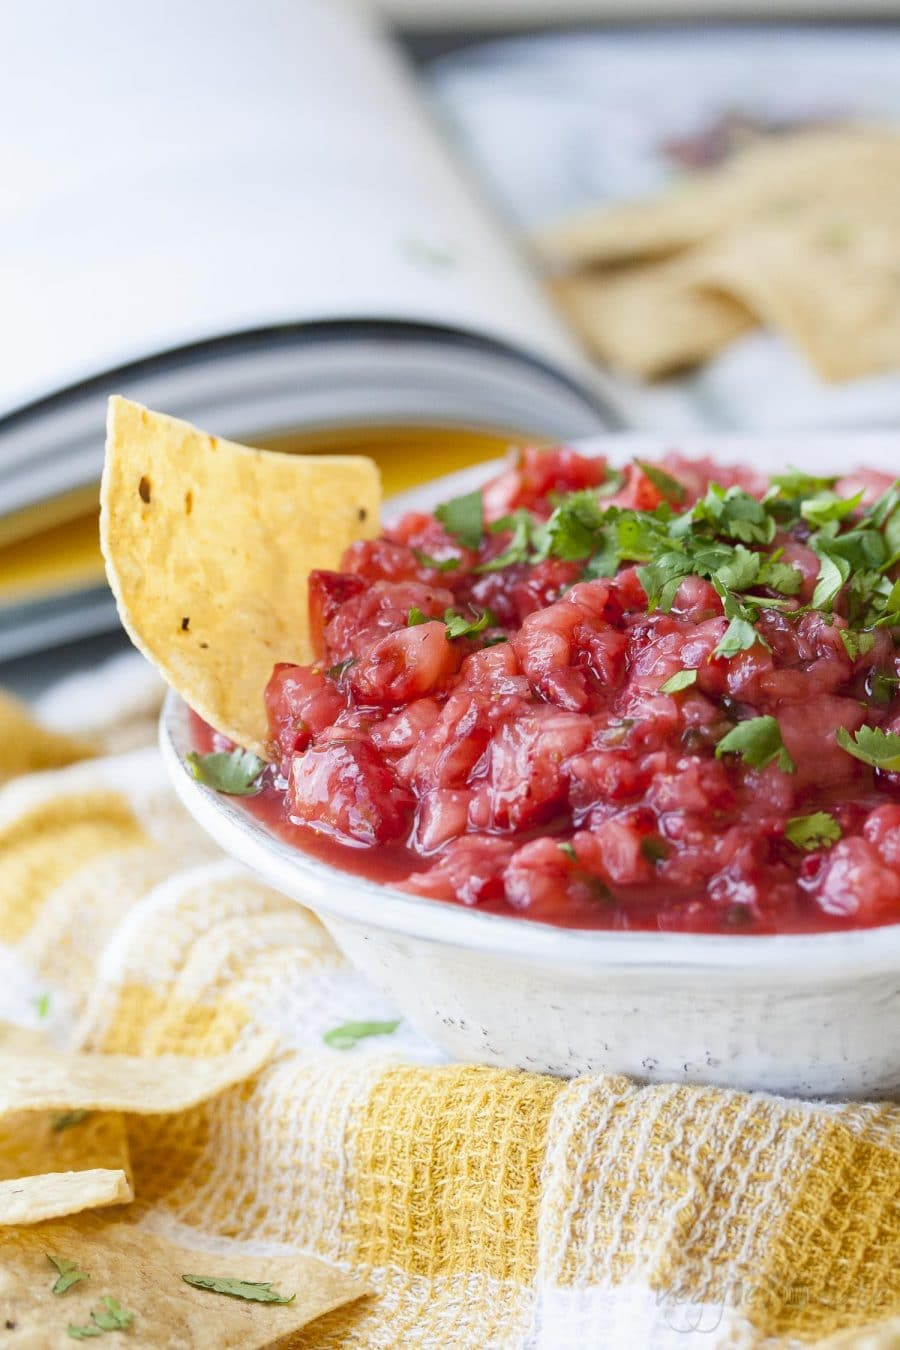 Salsa made from strawberries and serrano chile peppers perfect for chips